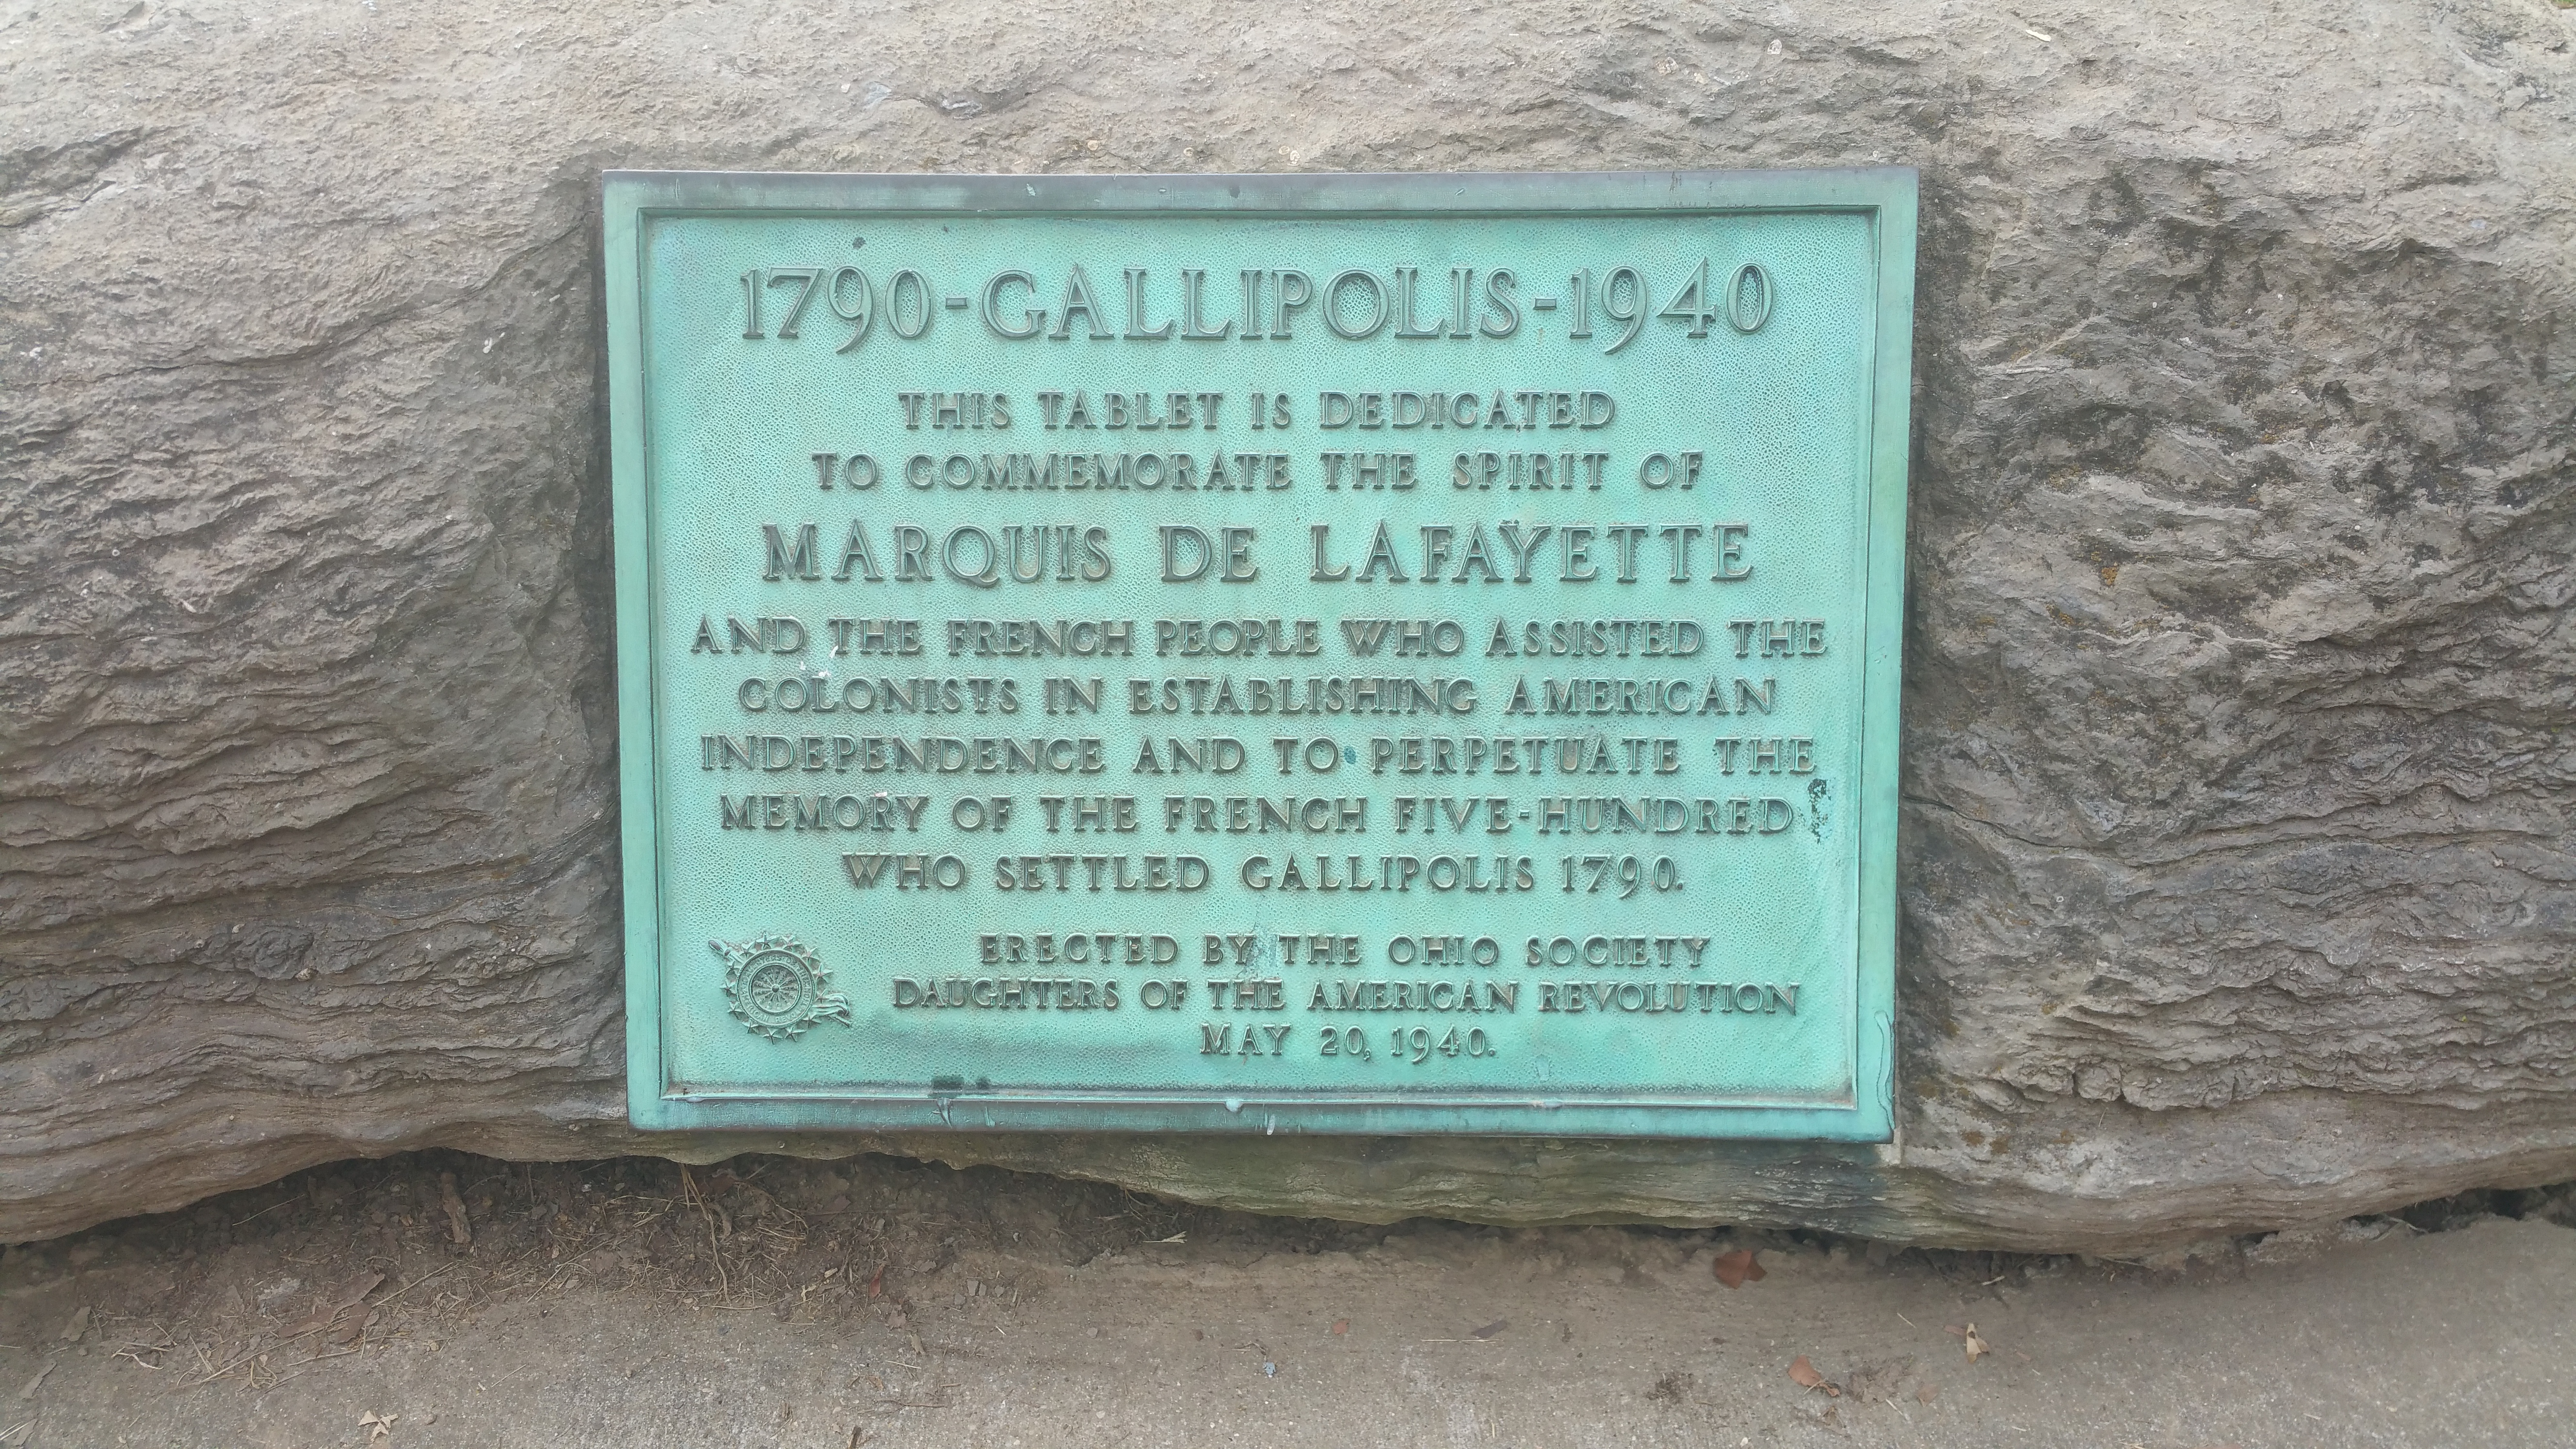 """This tablet is dedicated to commemorate the spirit of Marquis de Lafayette and the French people who assisted the colonists in establishing American independence and to perpetuate the memory of the French Five-Hundred who settled Gallipolis."""